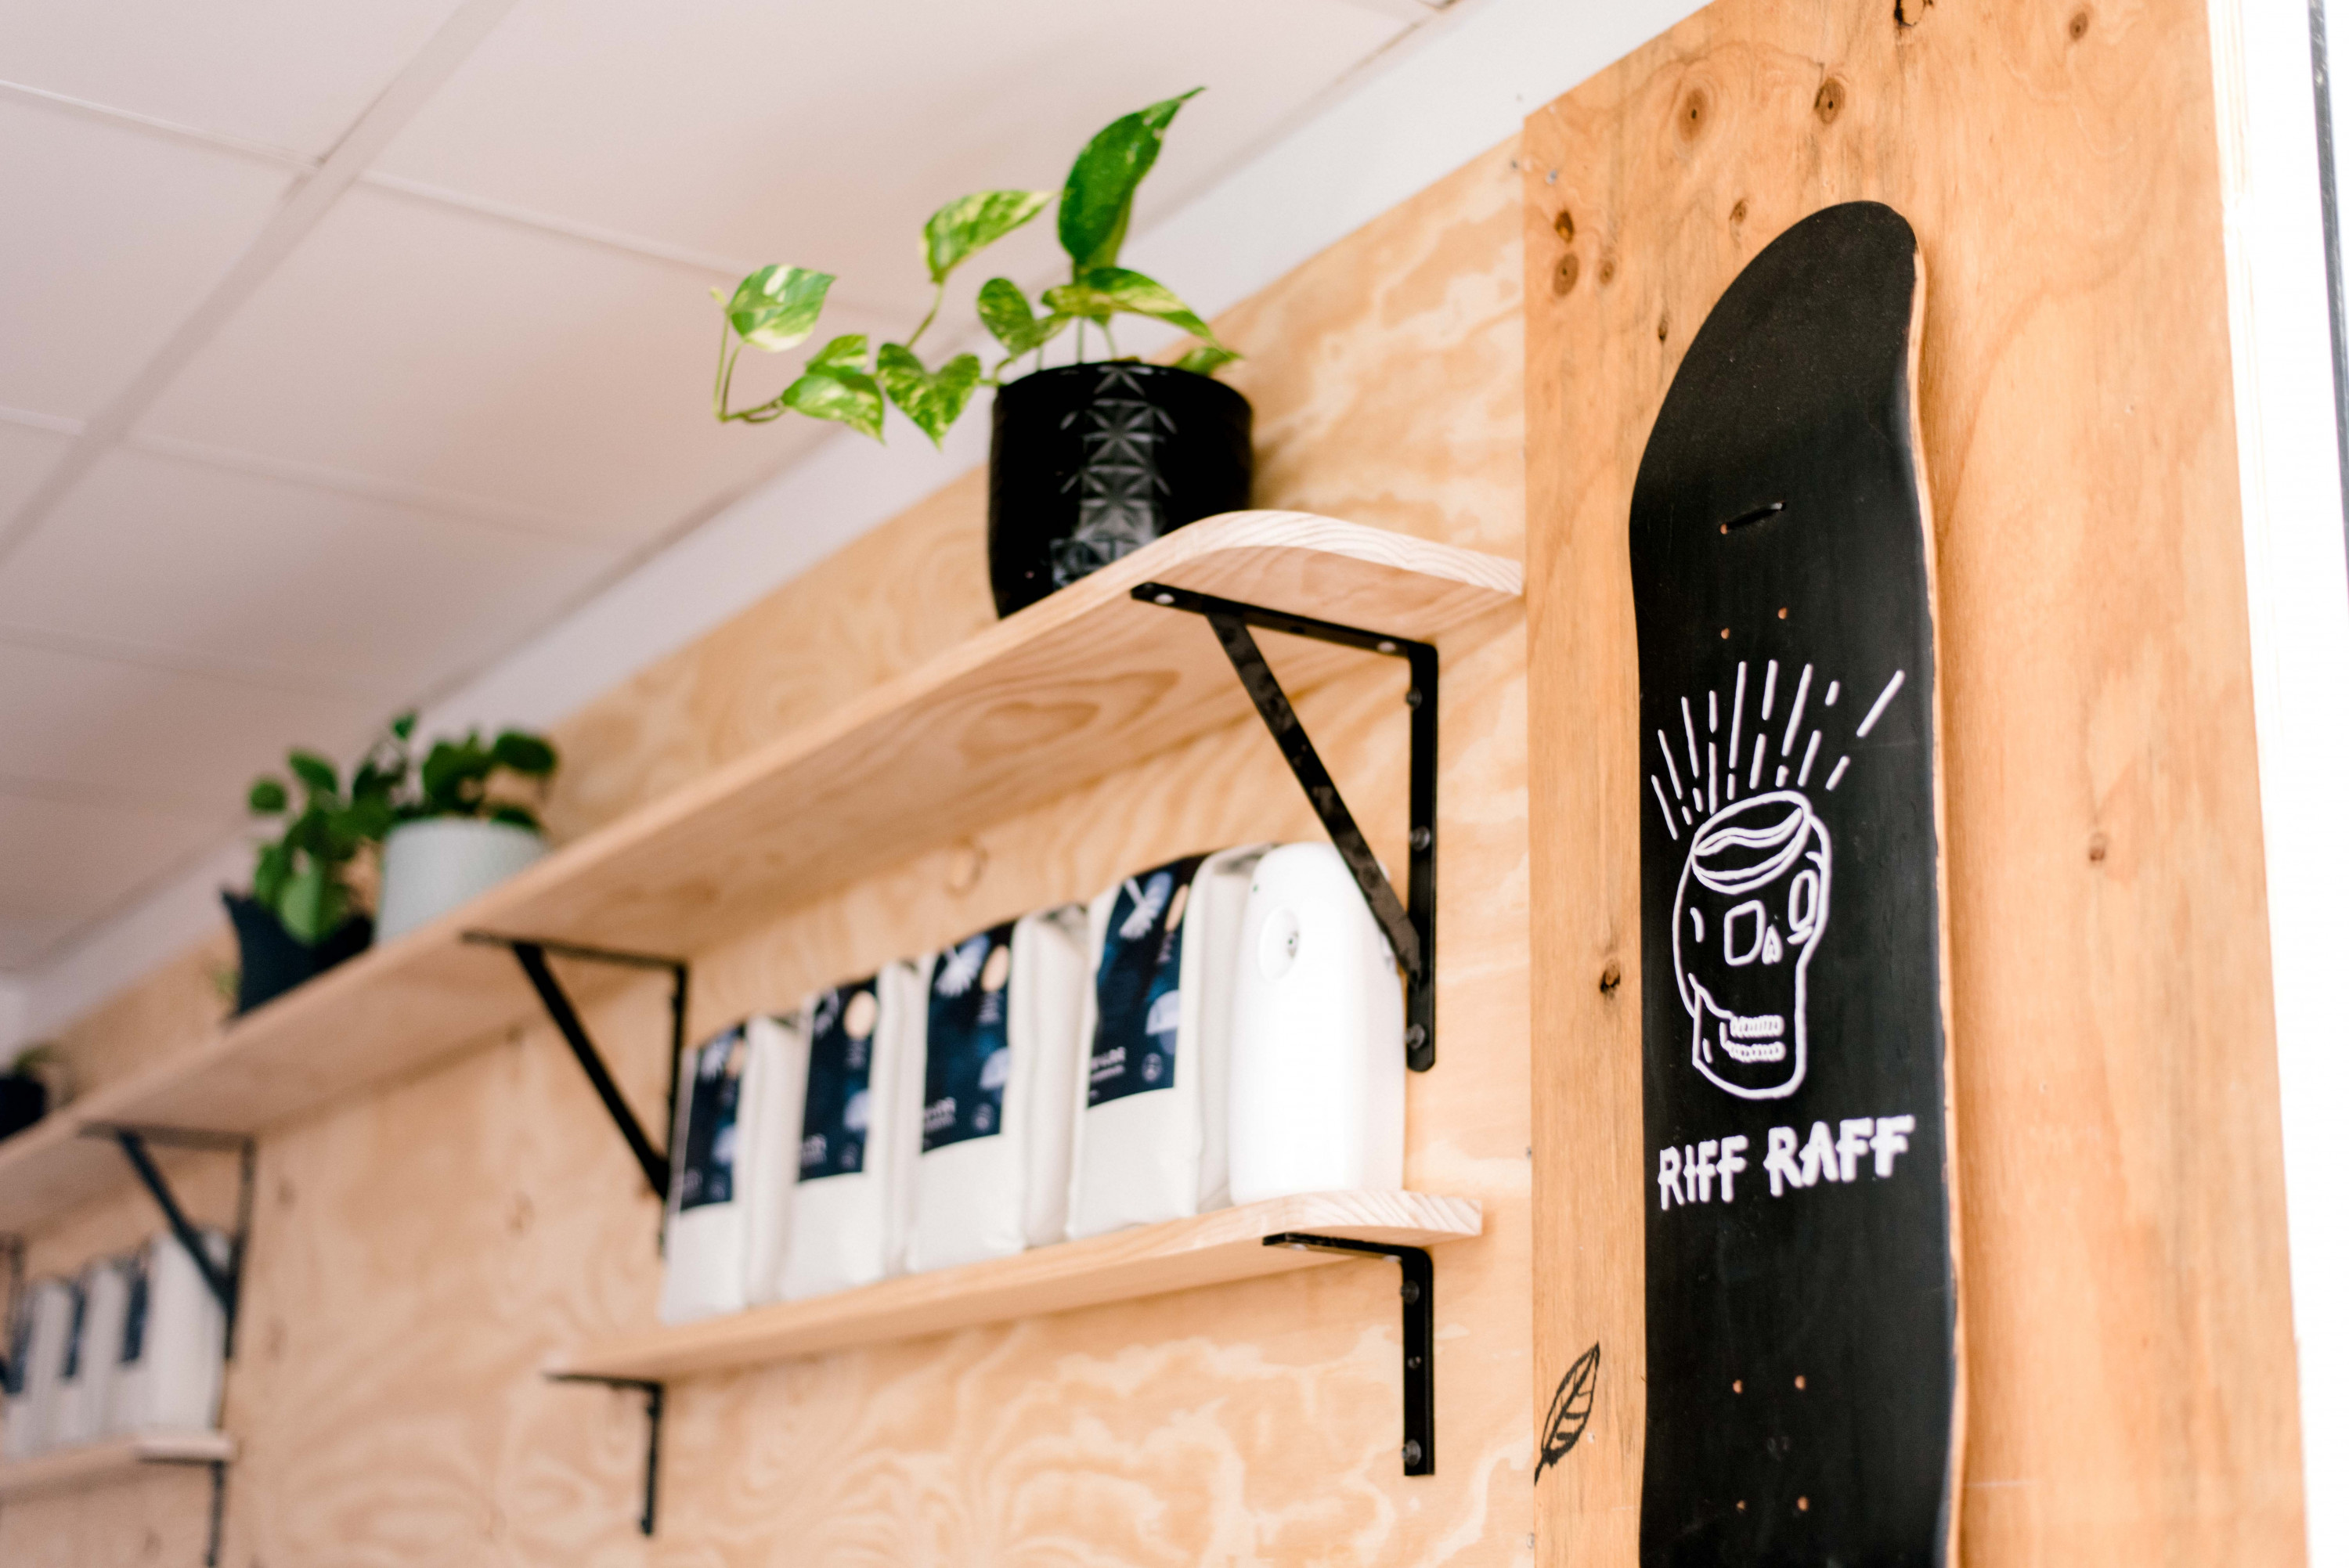 a wooden wall with wooden shelves stocked with coffee bags